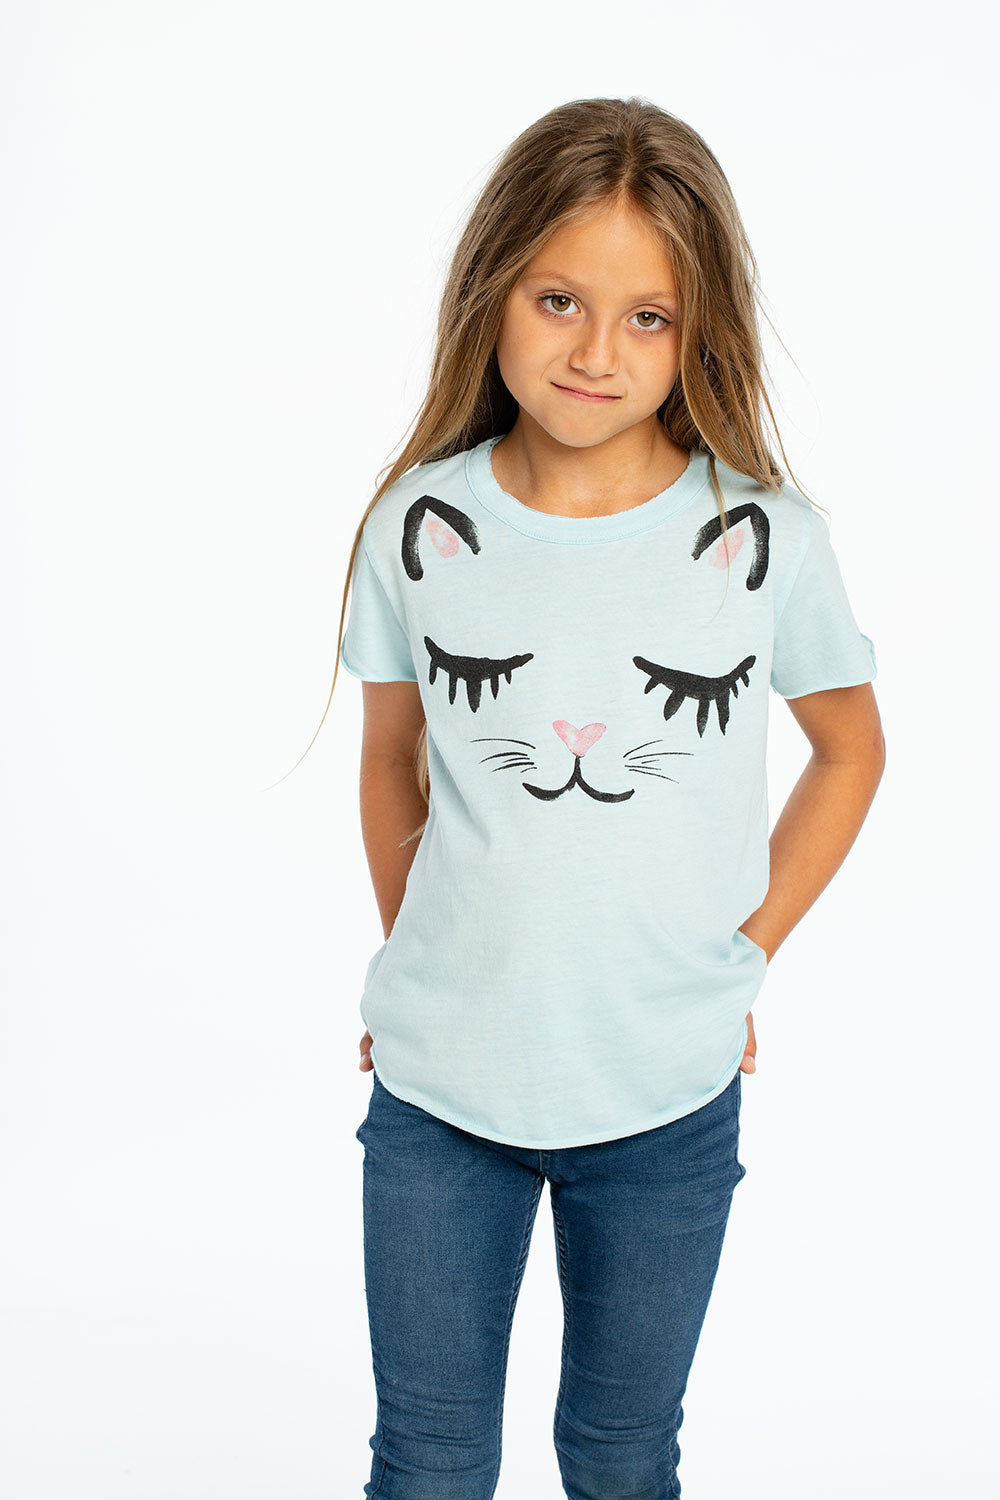 Rainbow Kitty GIRLS chaserbrand4.myshopify.com